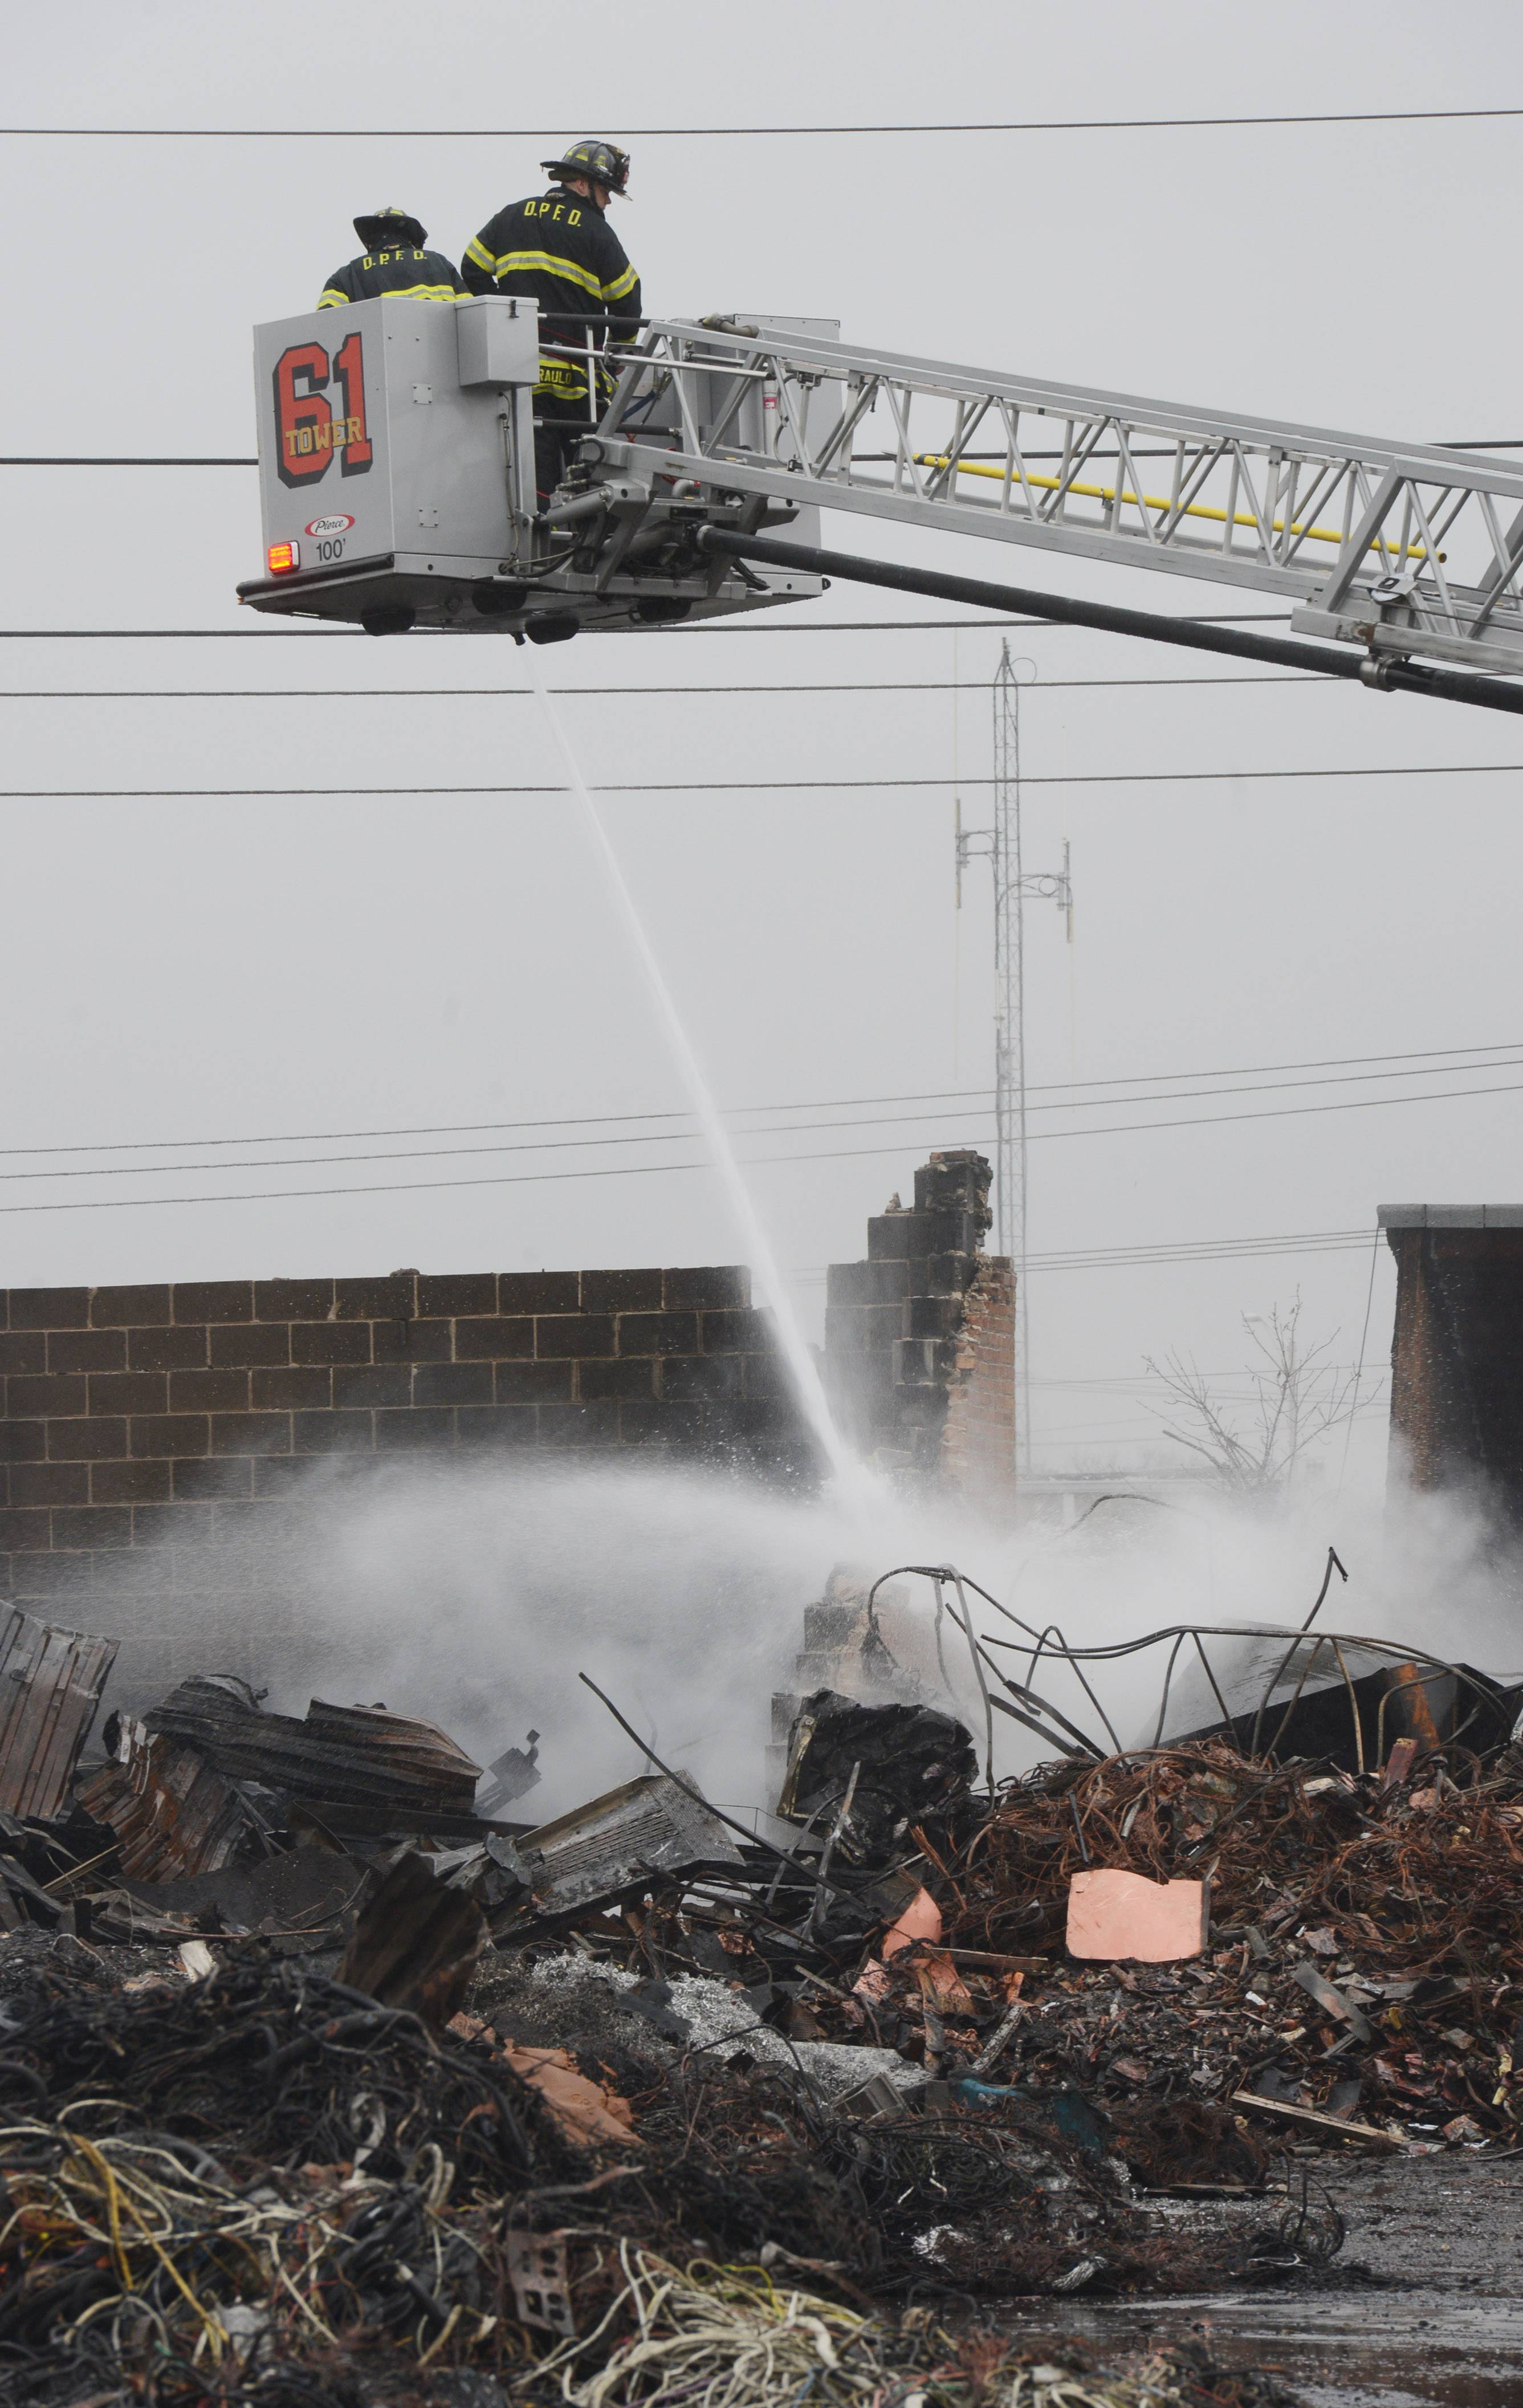 Firefighters spray water on the smoldering remnants of Maine Scrap Metal's factory Thursday in Des Plaines.